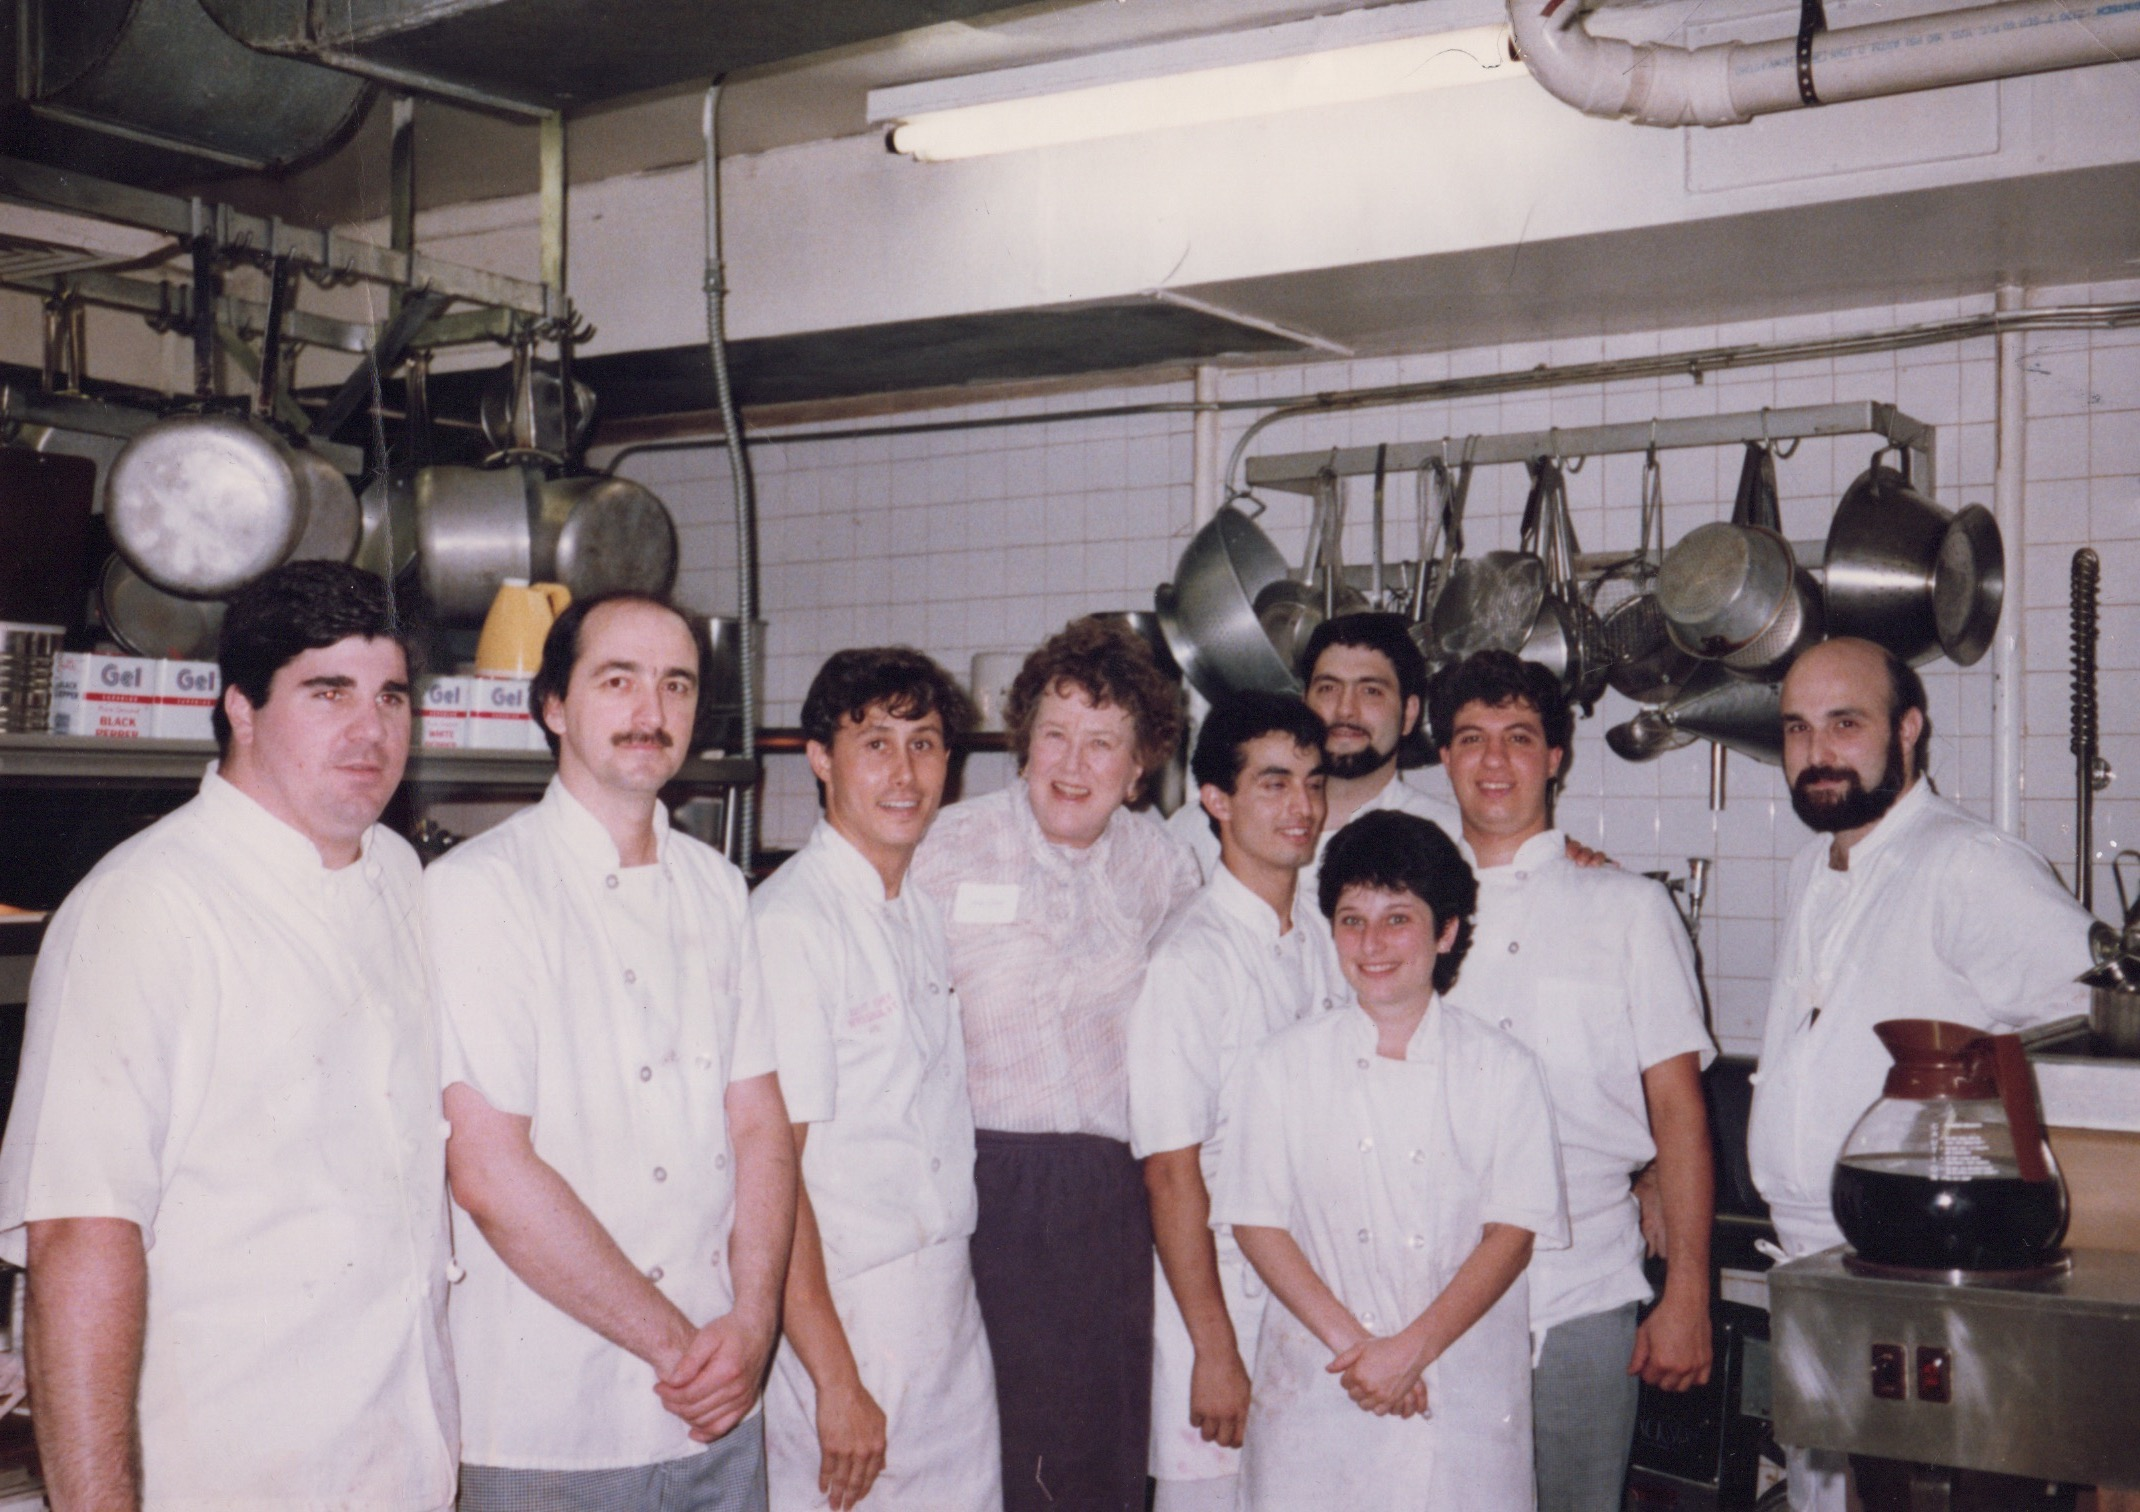 In the early 80s, Chef Rafael was working at the River Cafe. Photographed here with the staff and Julia Child.